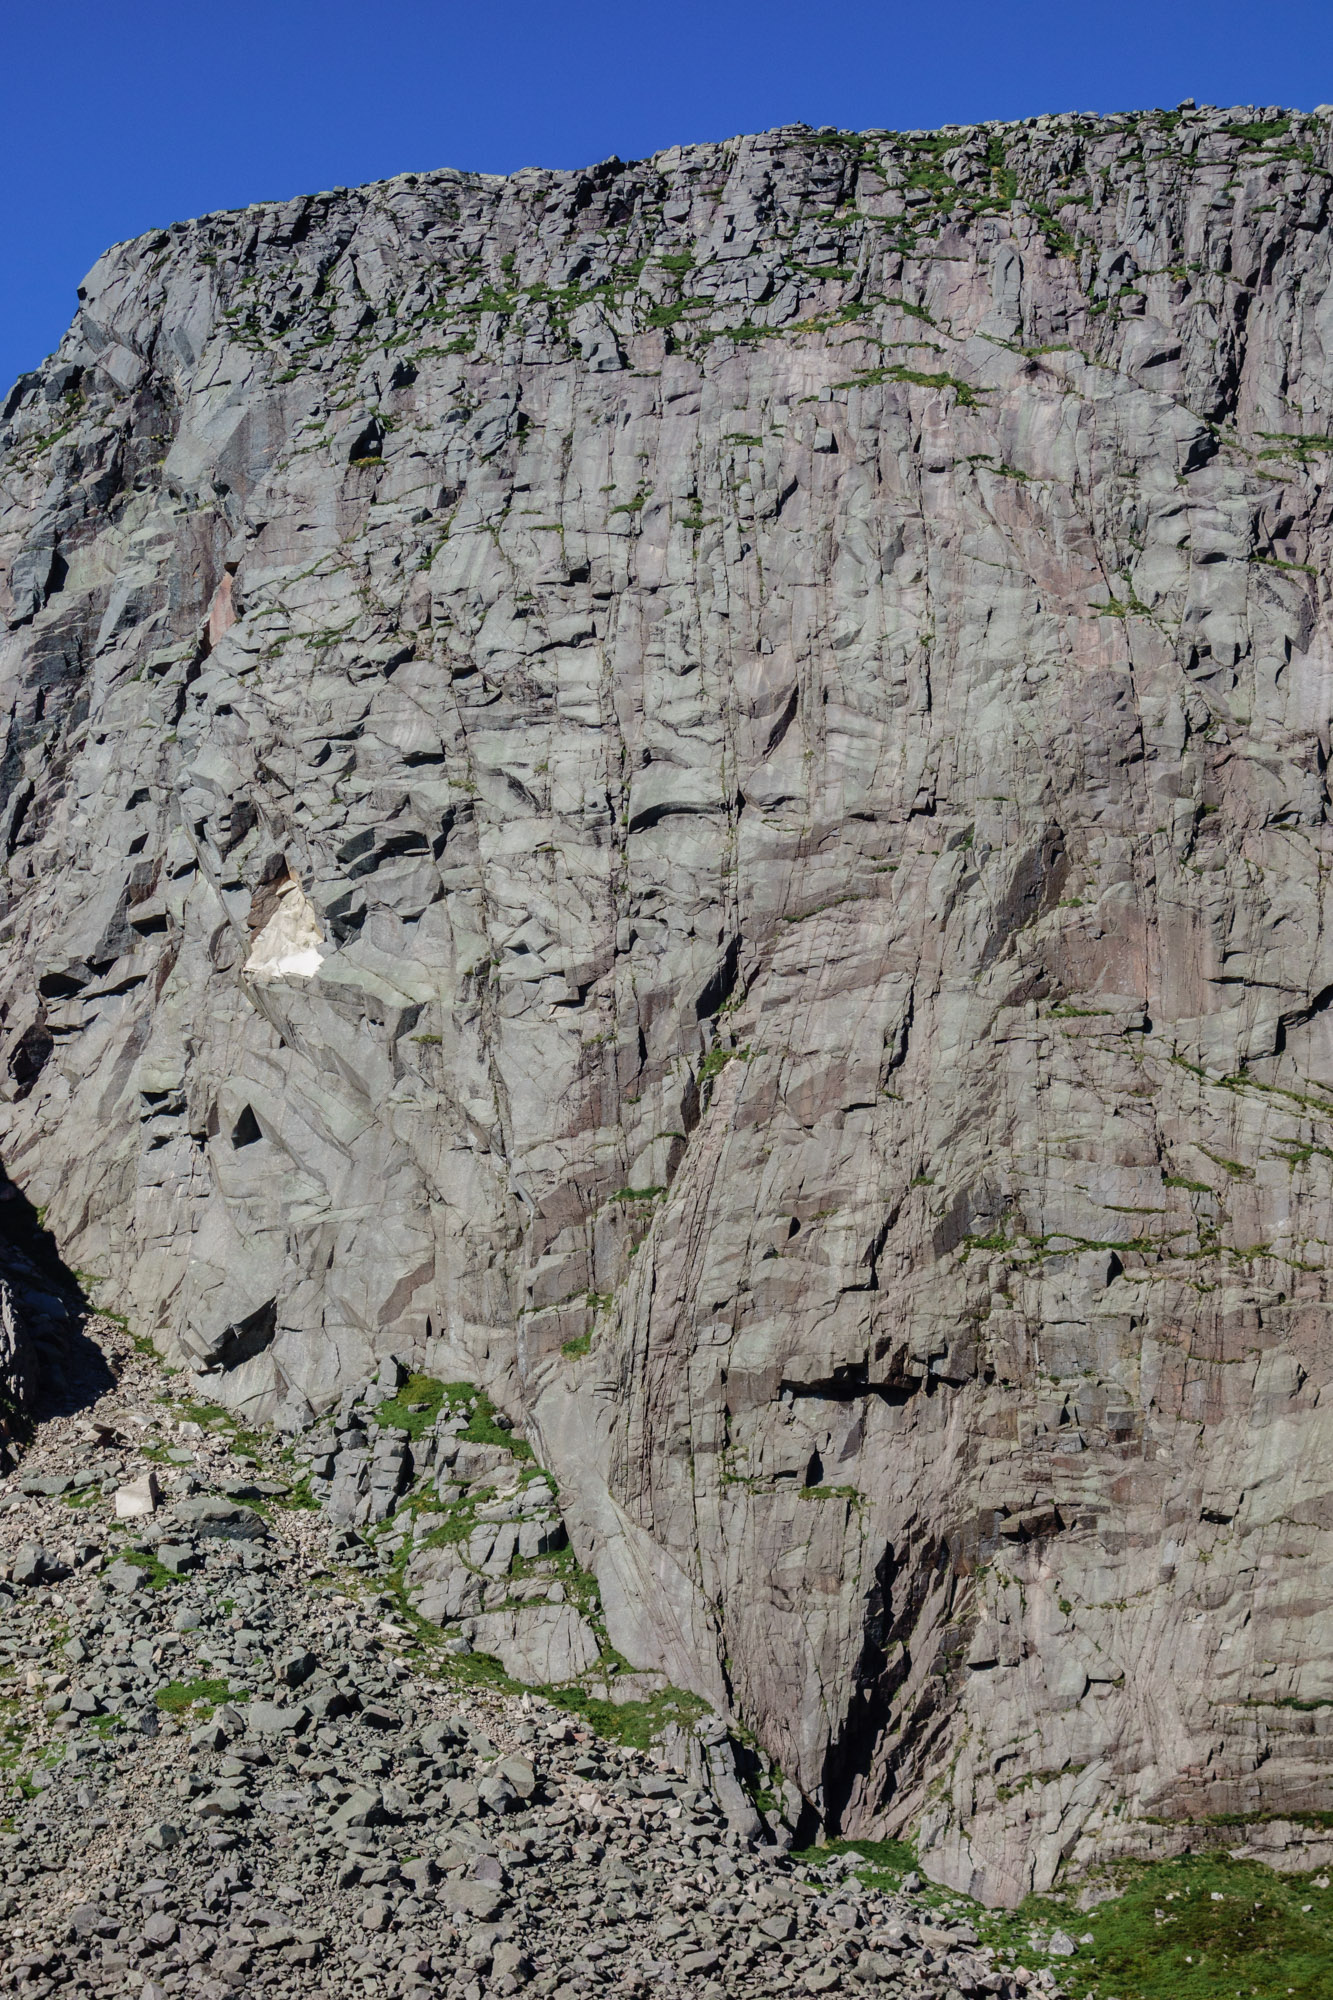 The 200 m high Central Gully Wall with the infamous roof of King Rat on the lower right had side